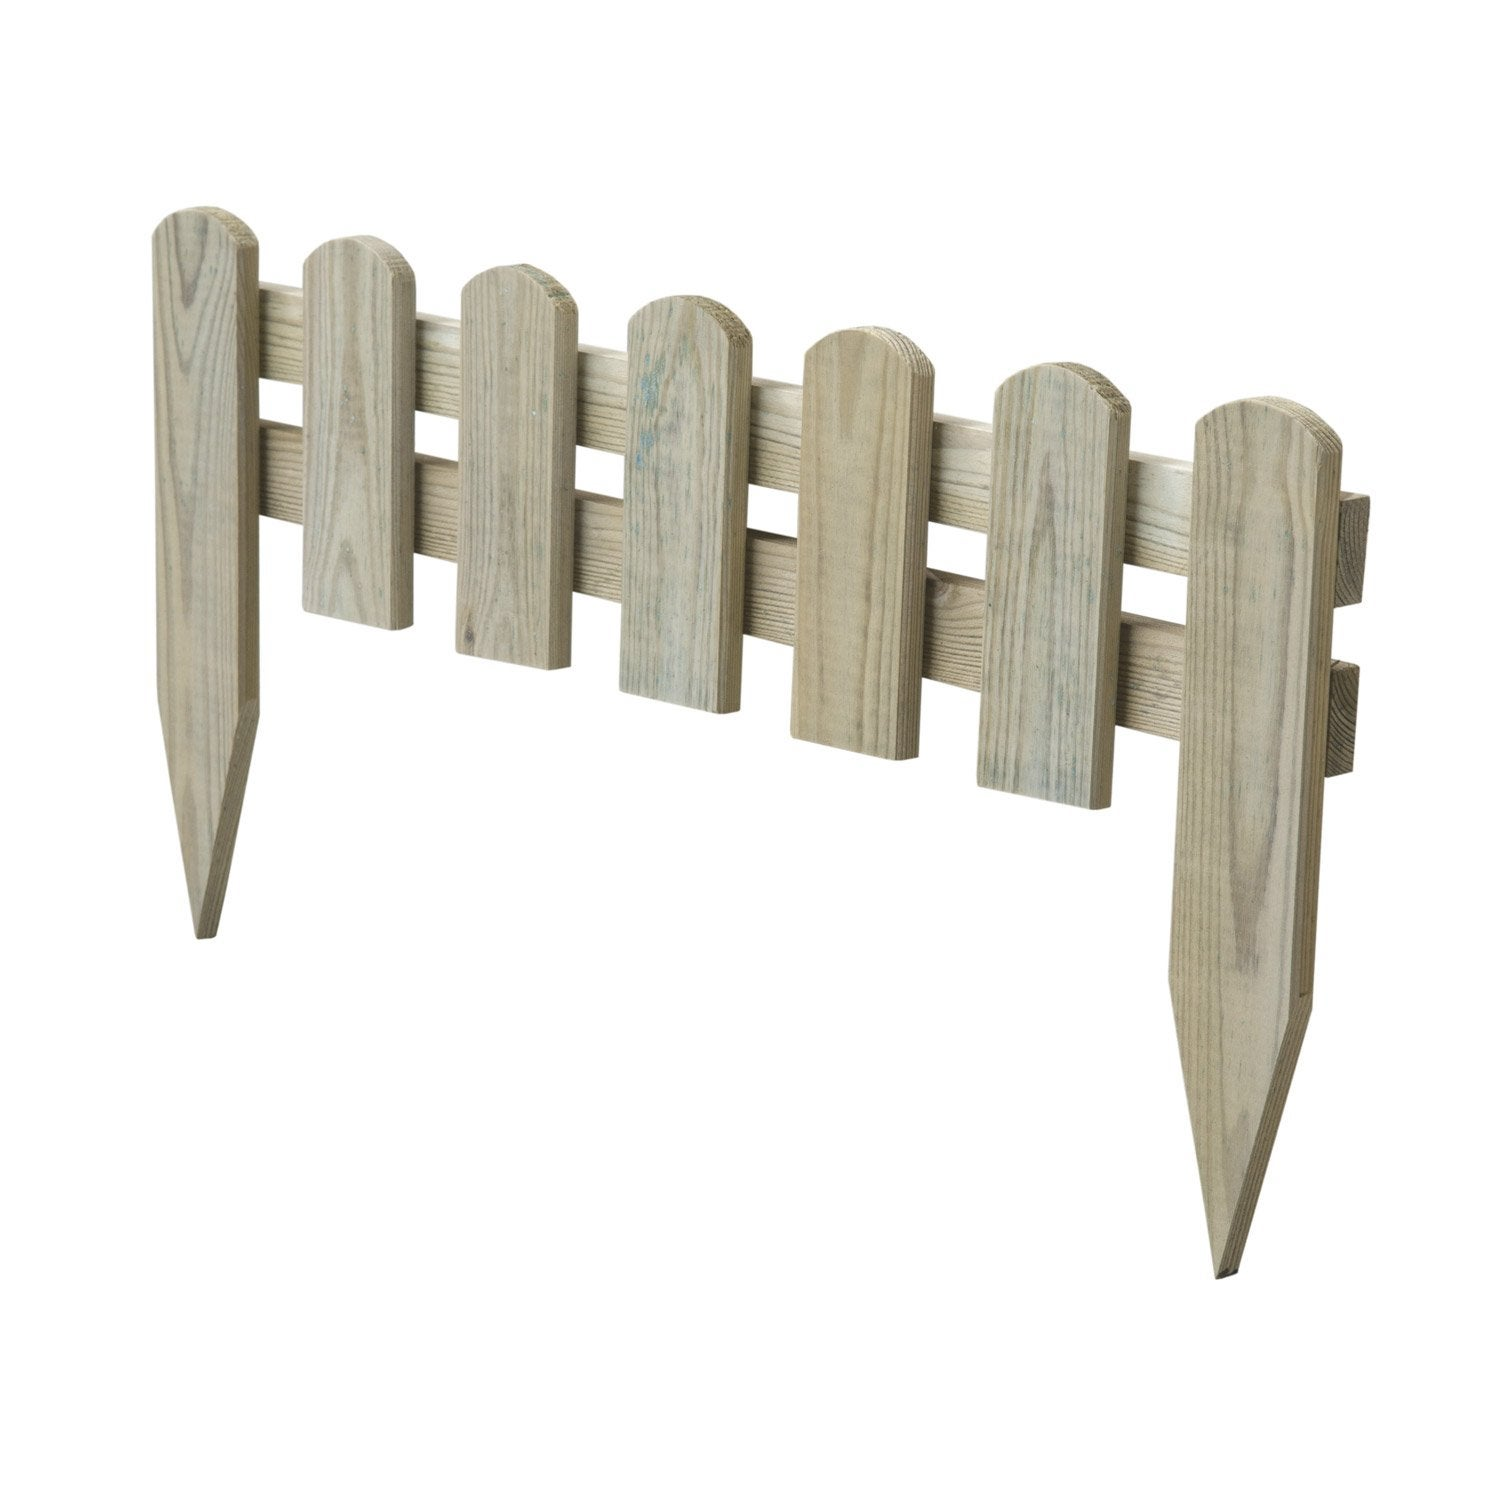 Bordure planter stackette bois naturel x cm for Bordure en bois de jardin